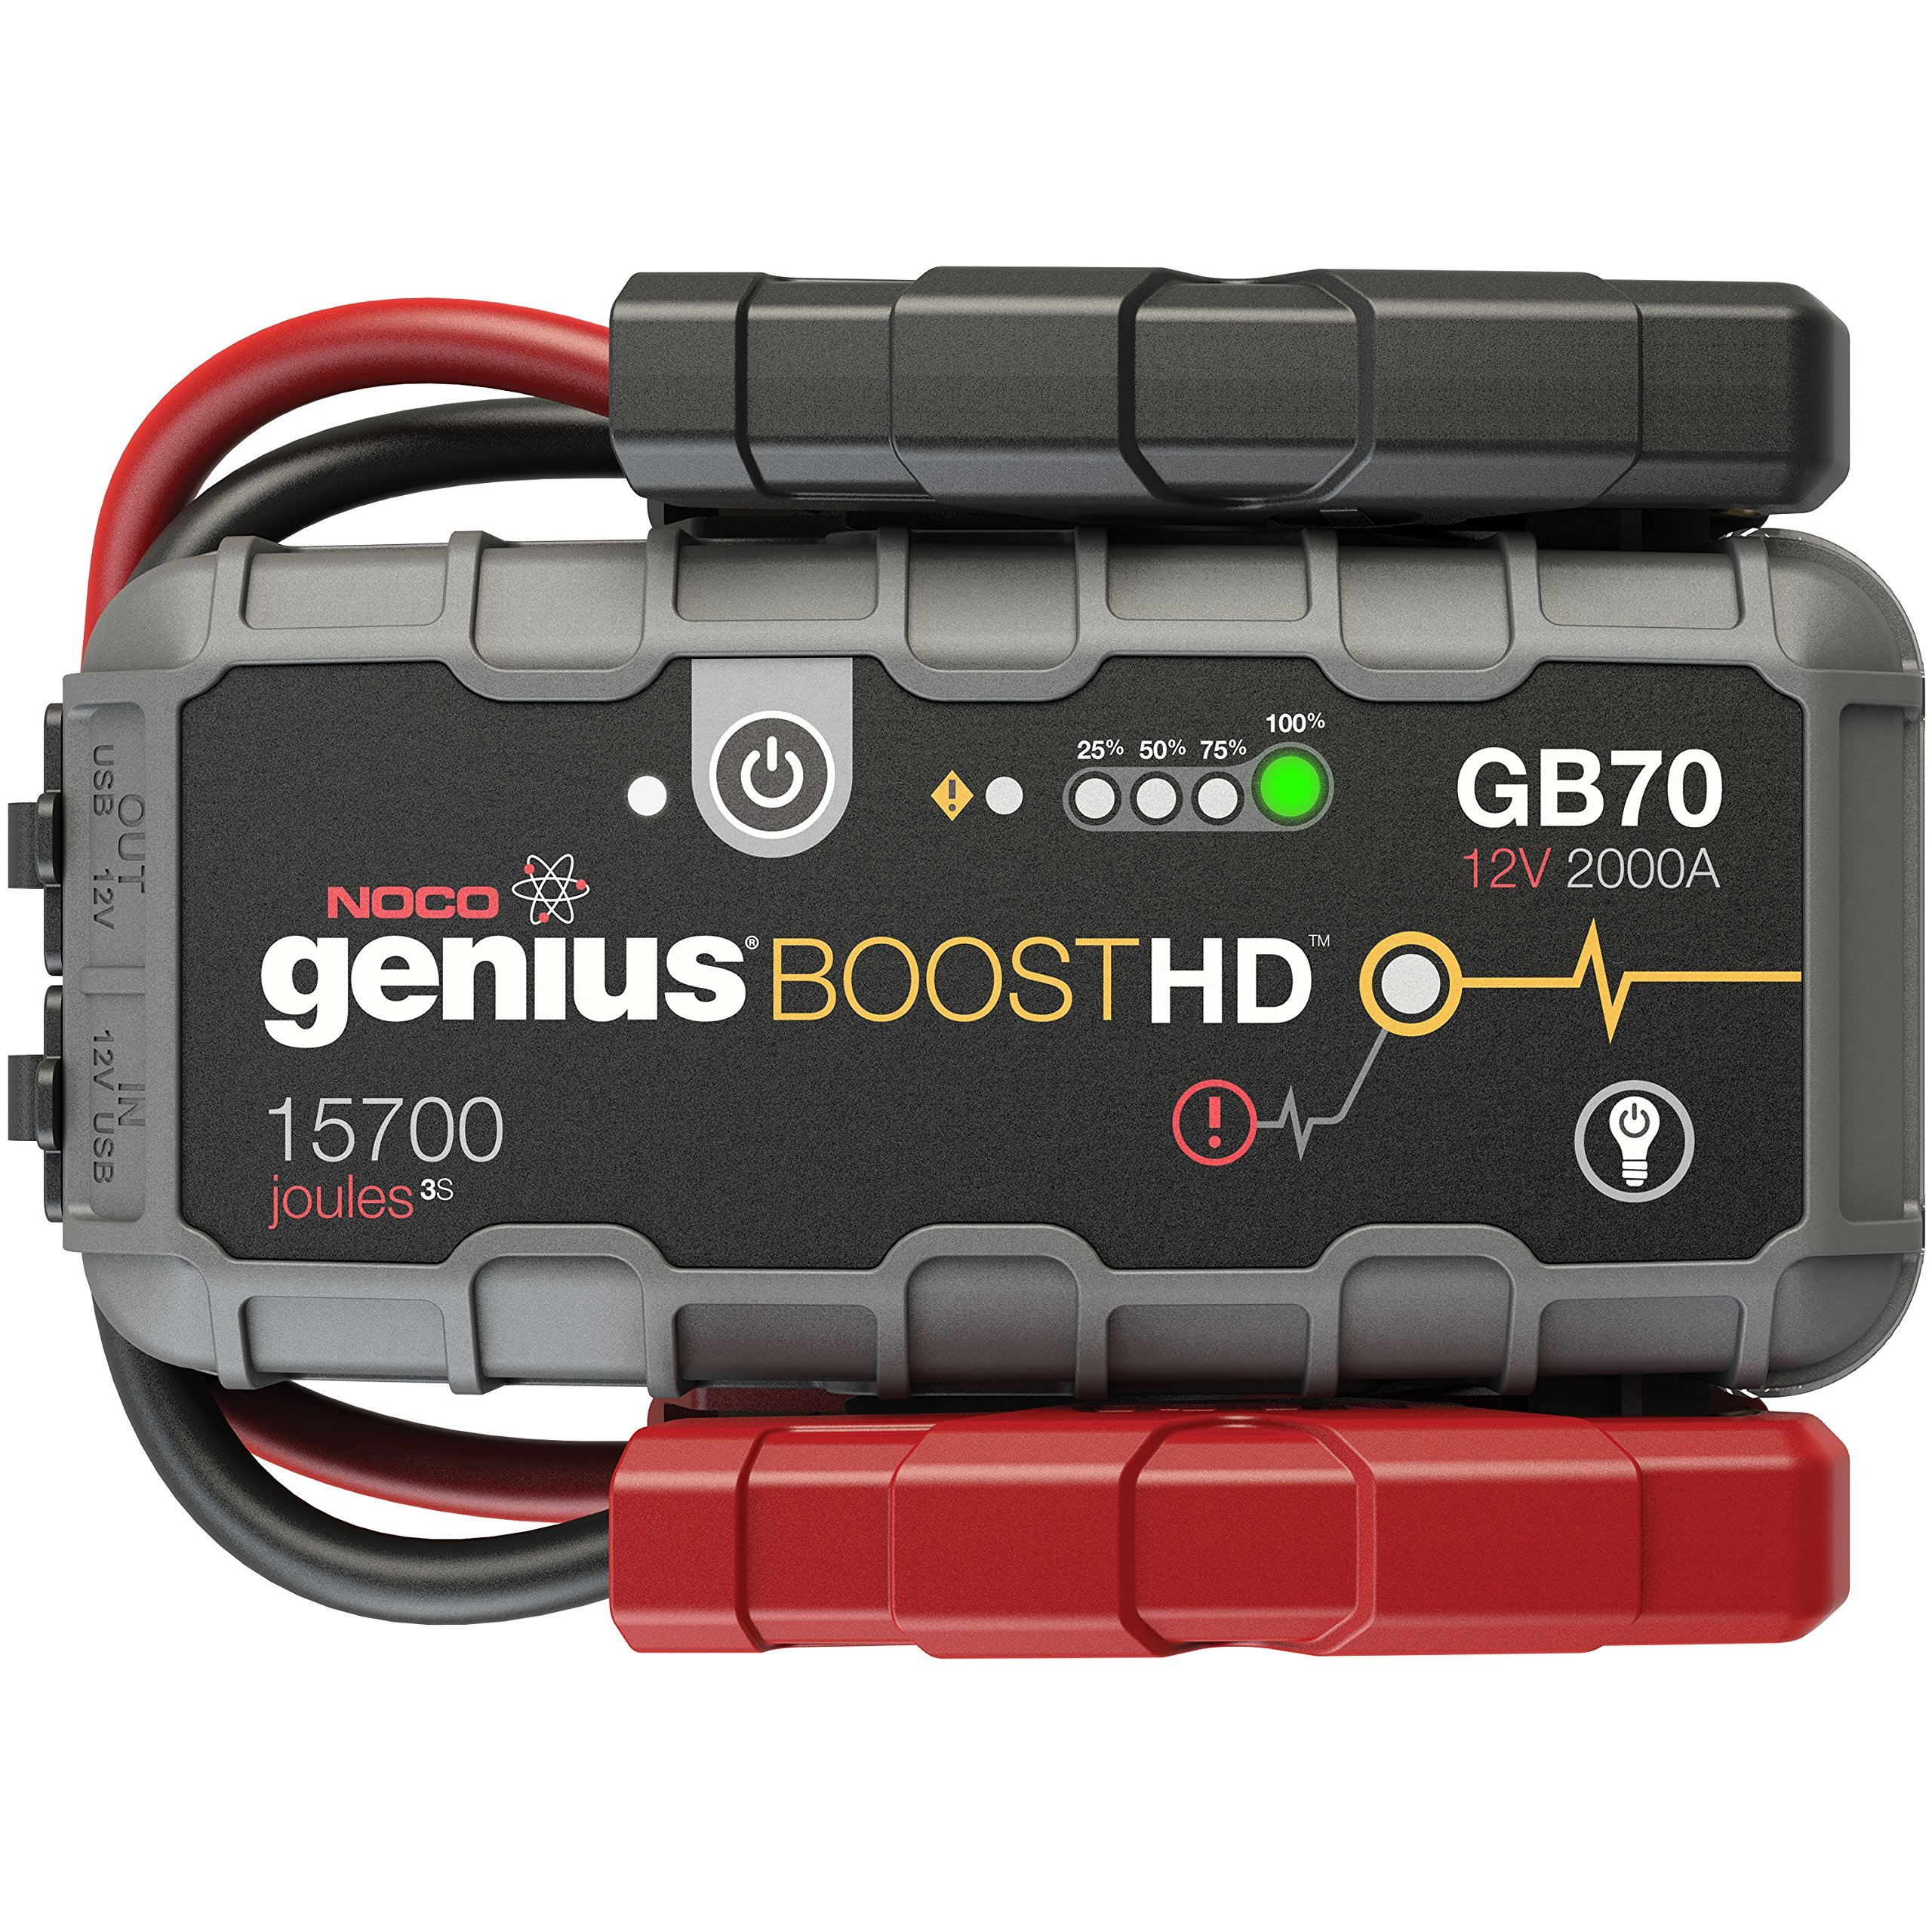 NOCO Genius Boost HD GB70 2000 Amp 12V UltraSafe Lithium Jump Starter by NOCO